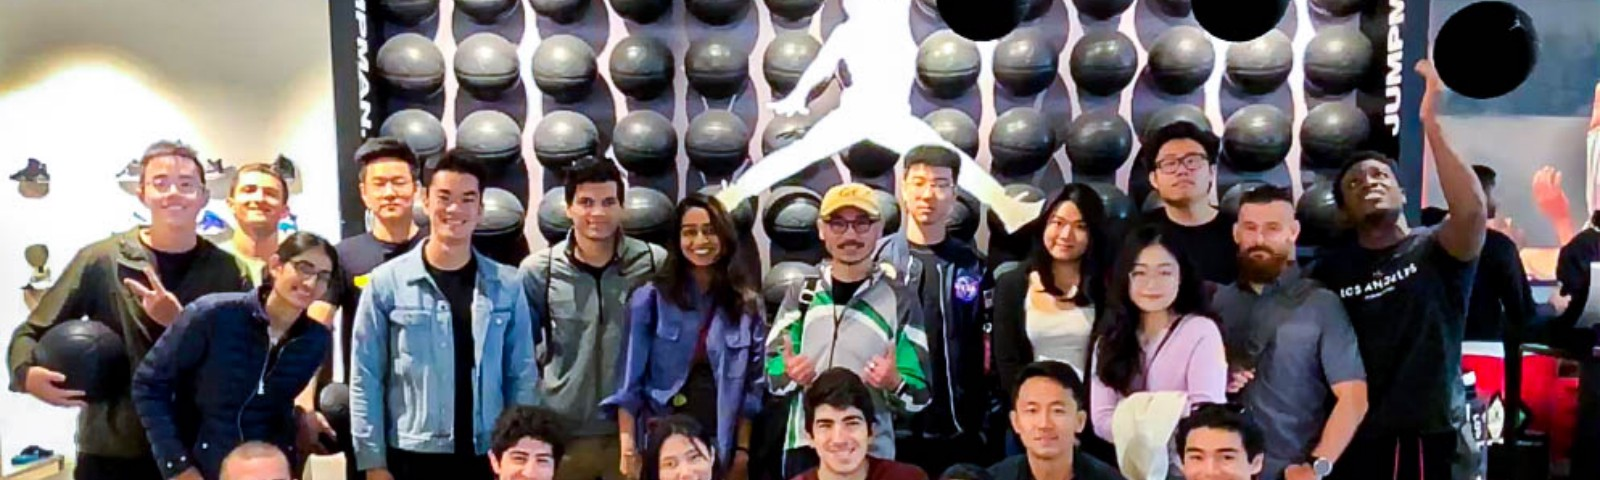 The Blue Goji teams posing in the Jordan Jumpman Store.